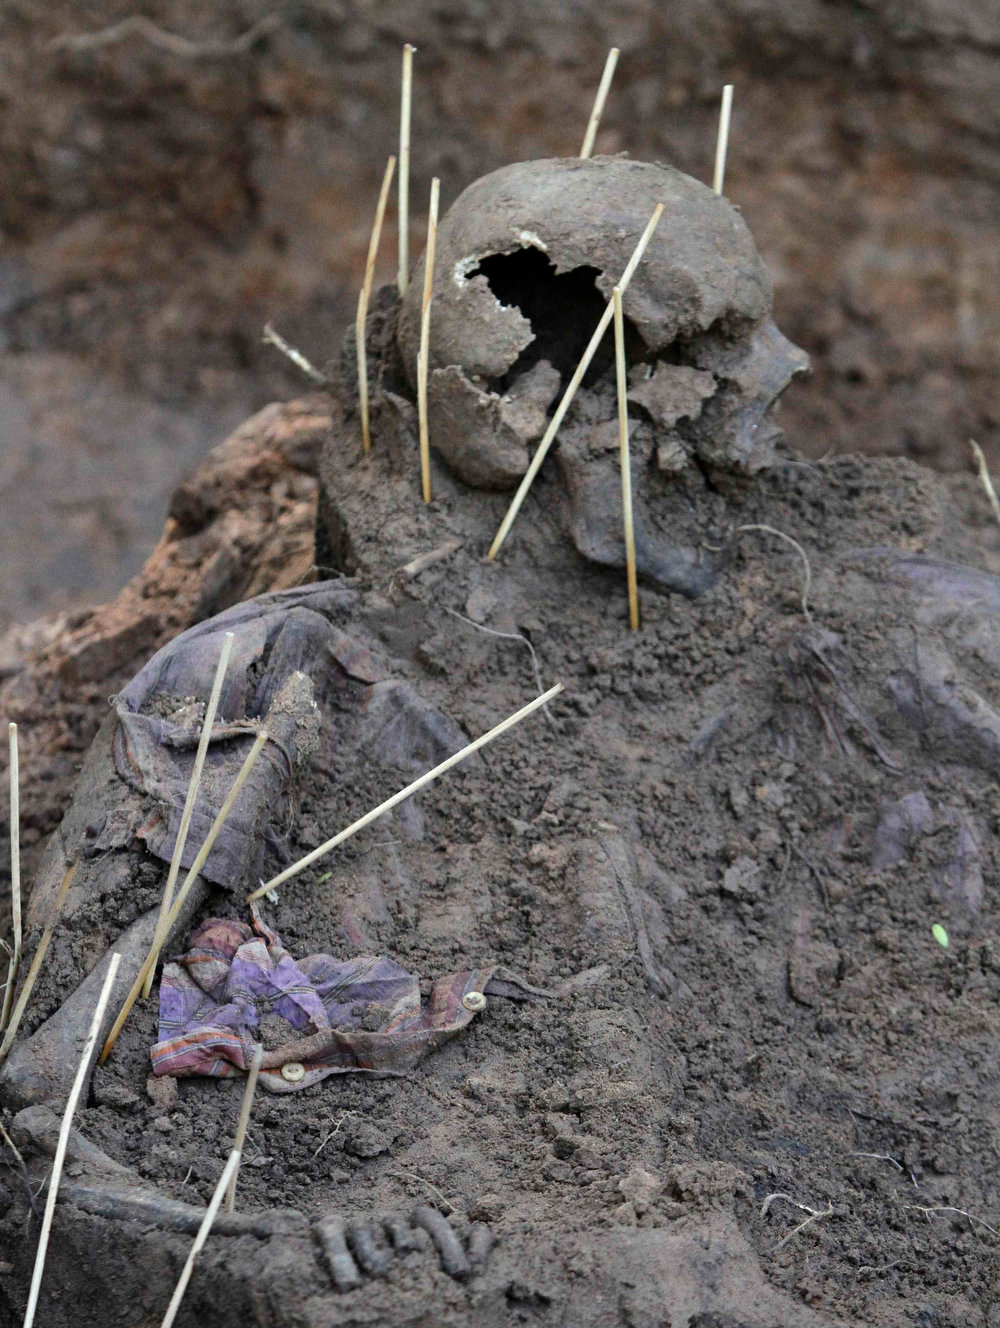 . Human remains discovered in the grounds of a police barracks in Asuncion, Paraguay on March 21, 2013. According to the researchers, 15 more skeleton remains, likely to be victims of the 1954 to 1989 dictatorship under Alfredo Stroessner, were found in the last two days. REUTERS/Jorge Adorno